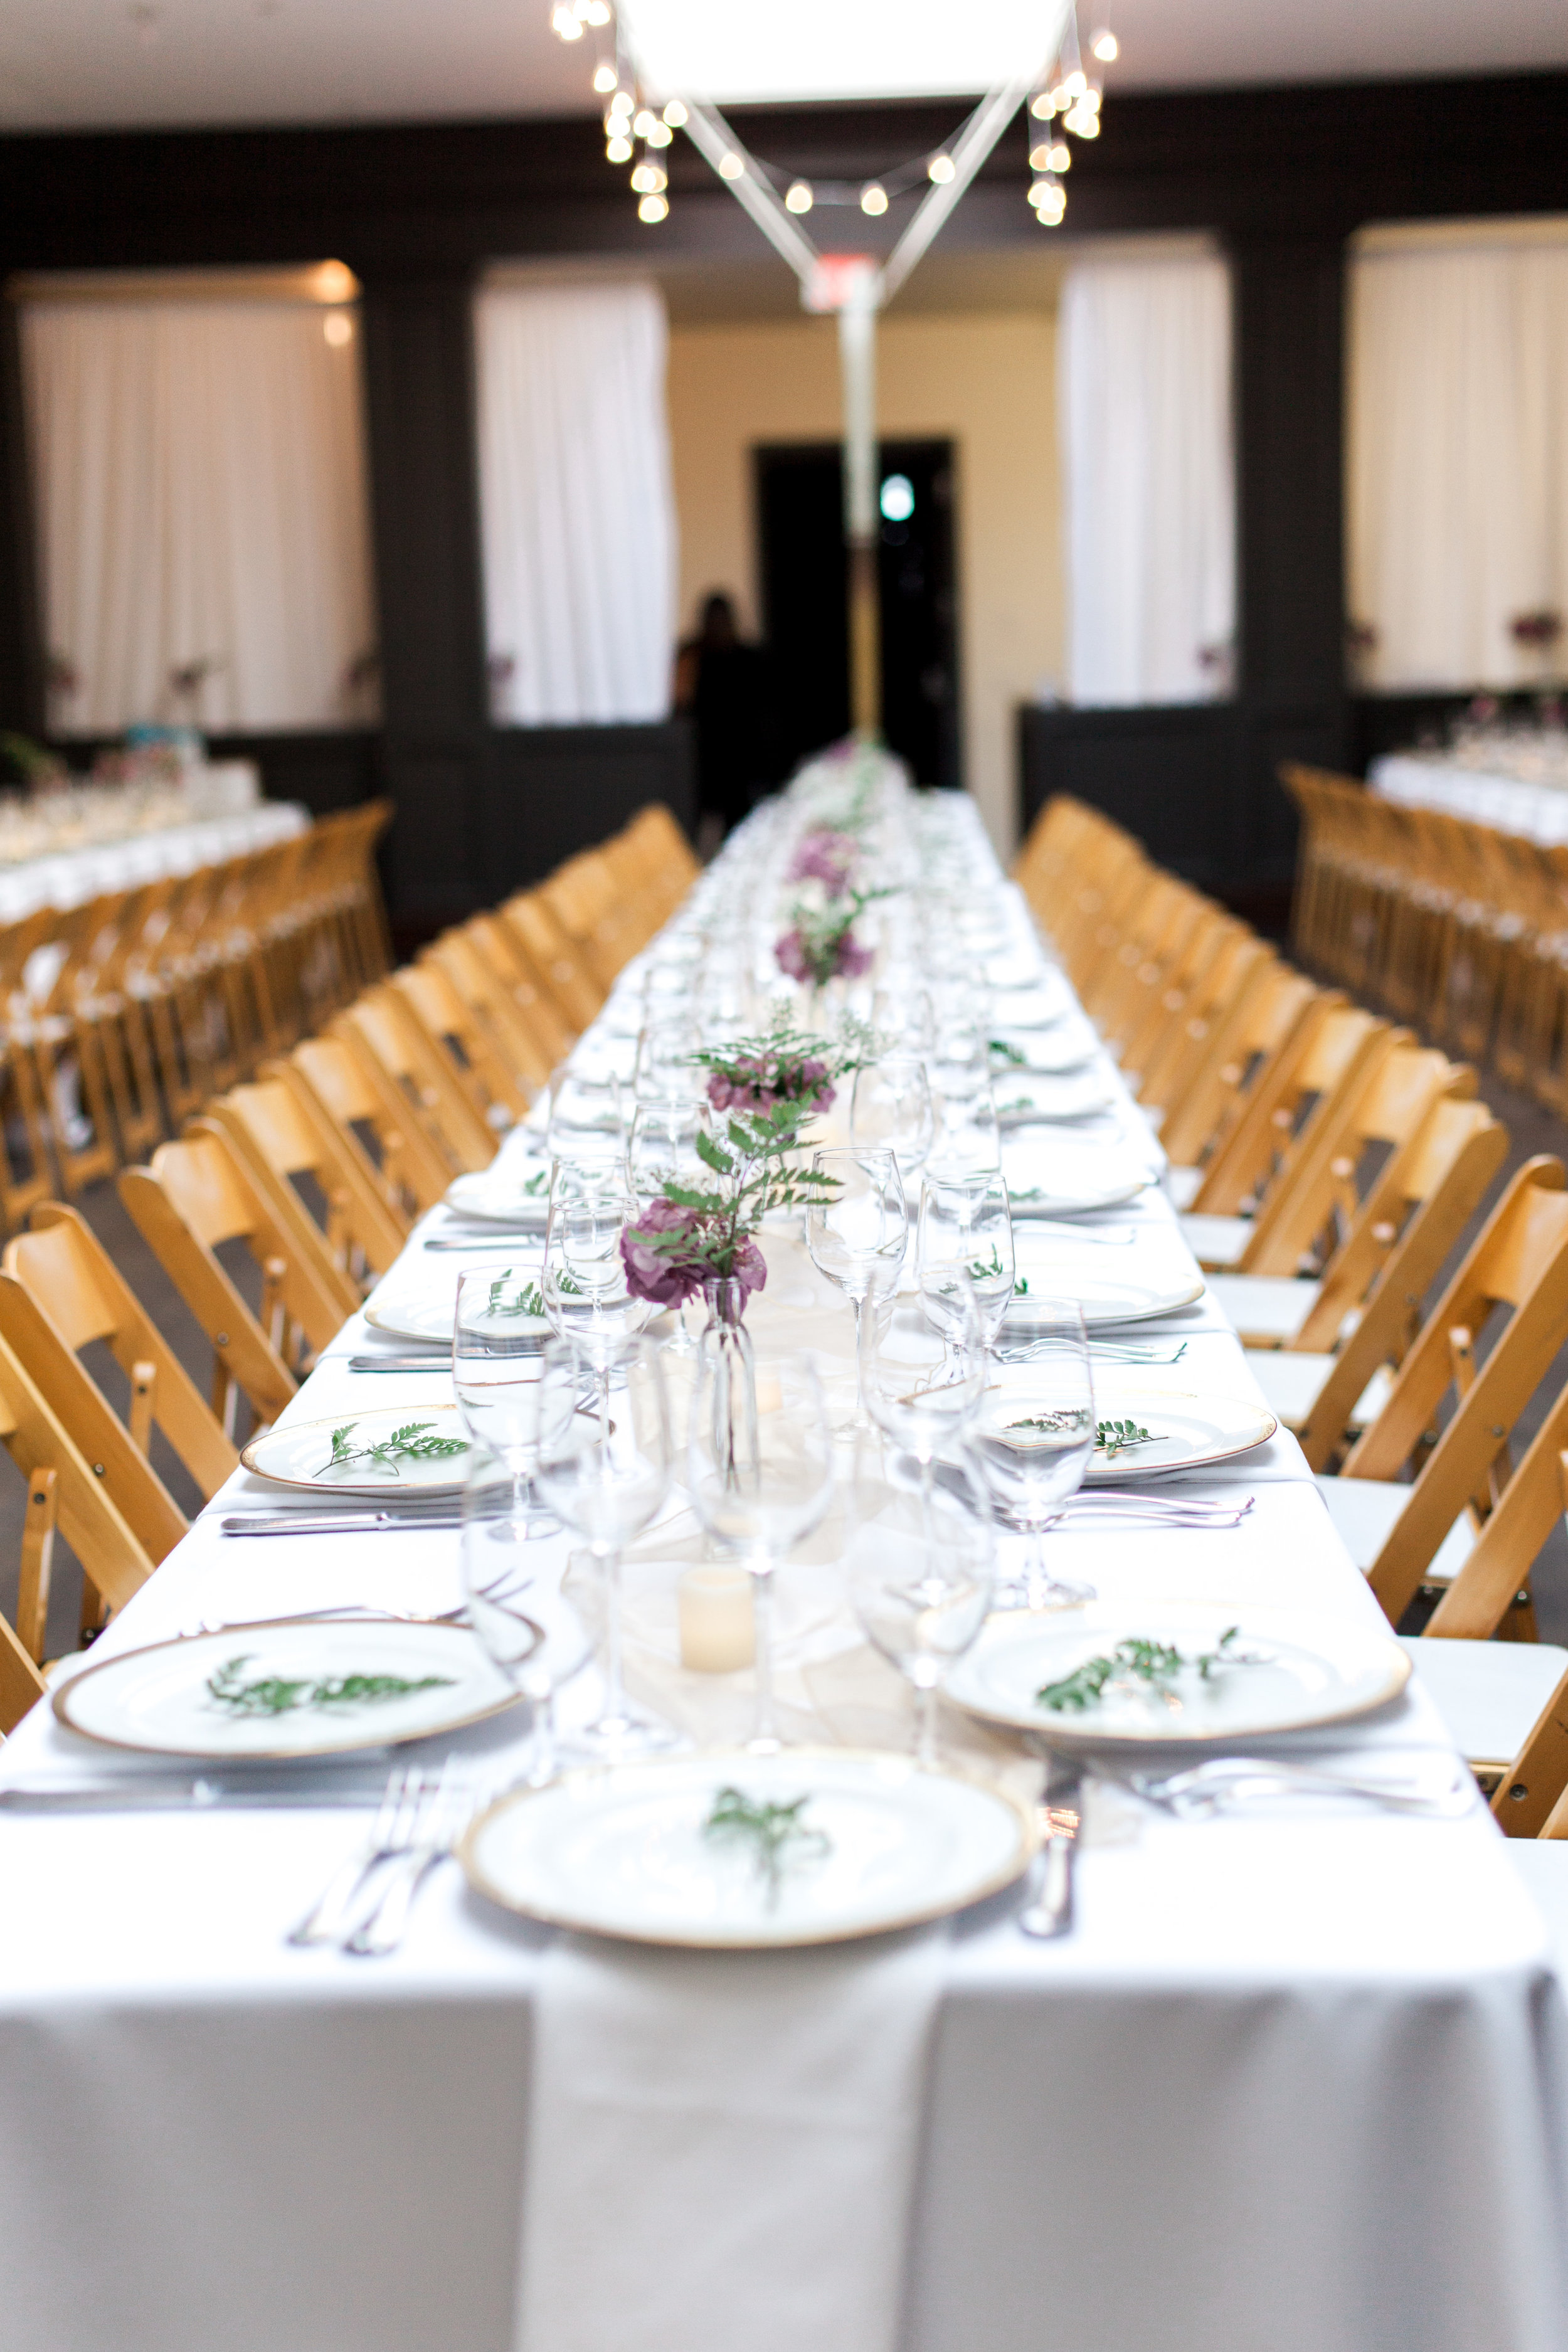 style-inspired-wedding-at-firehouse-8-in-san-francisco-74.jpg